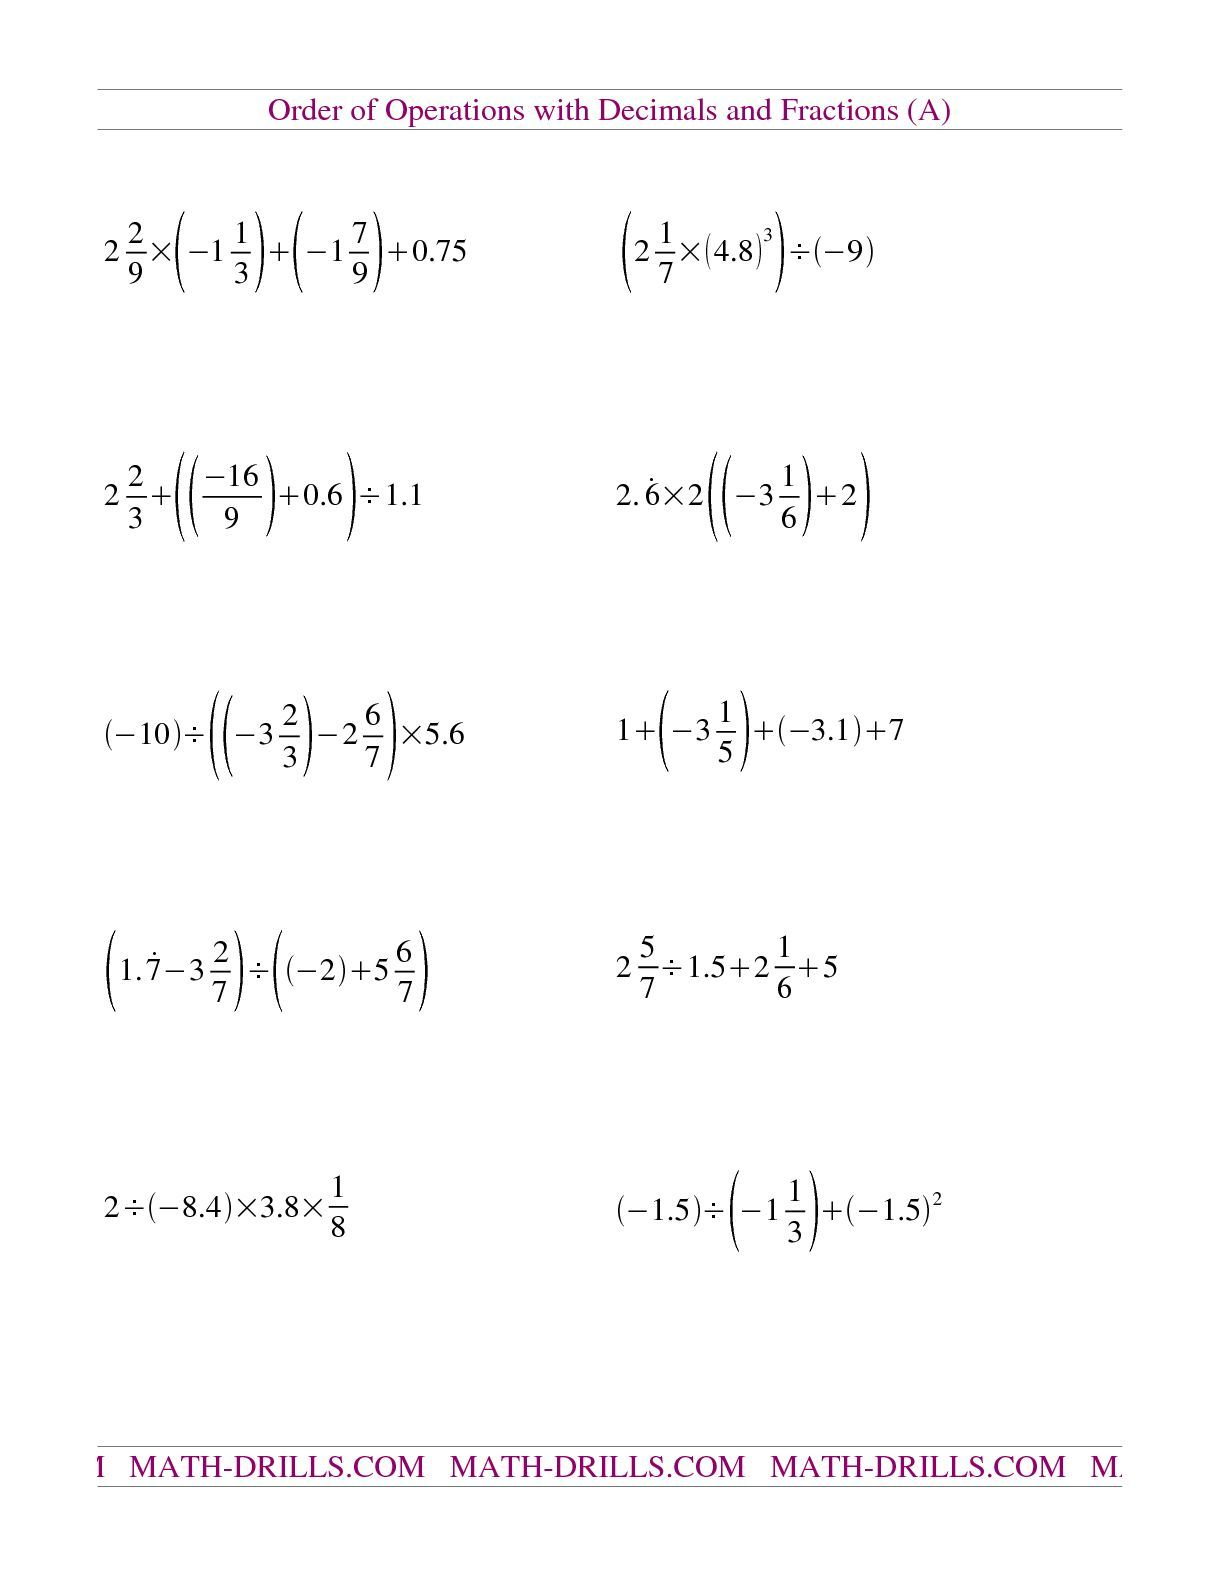 hight resolution of The Decimals and Fractions Mixed with Negatives (A) math worksheet from the  Order of Operations Workshe…   Order of operations